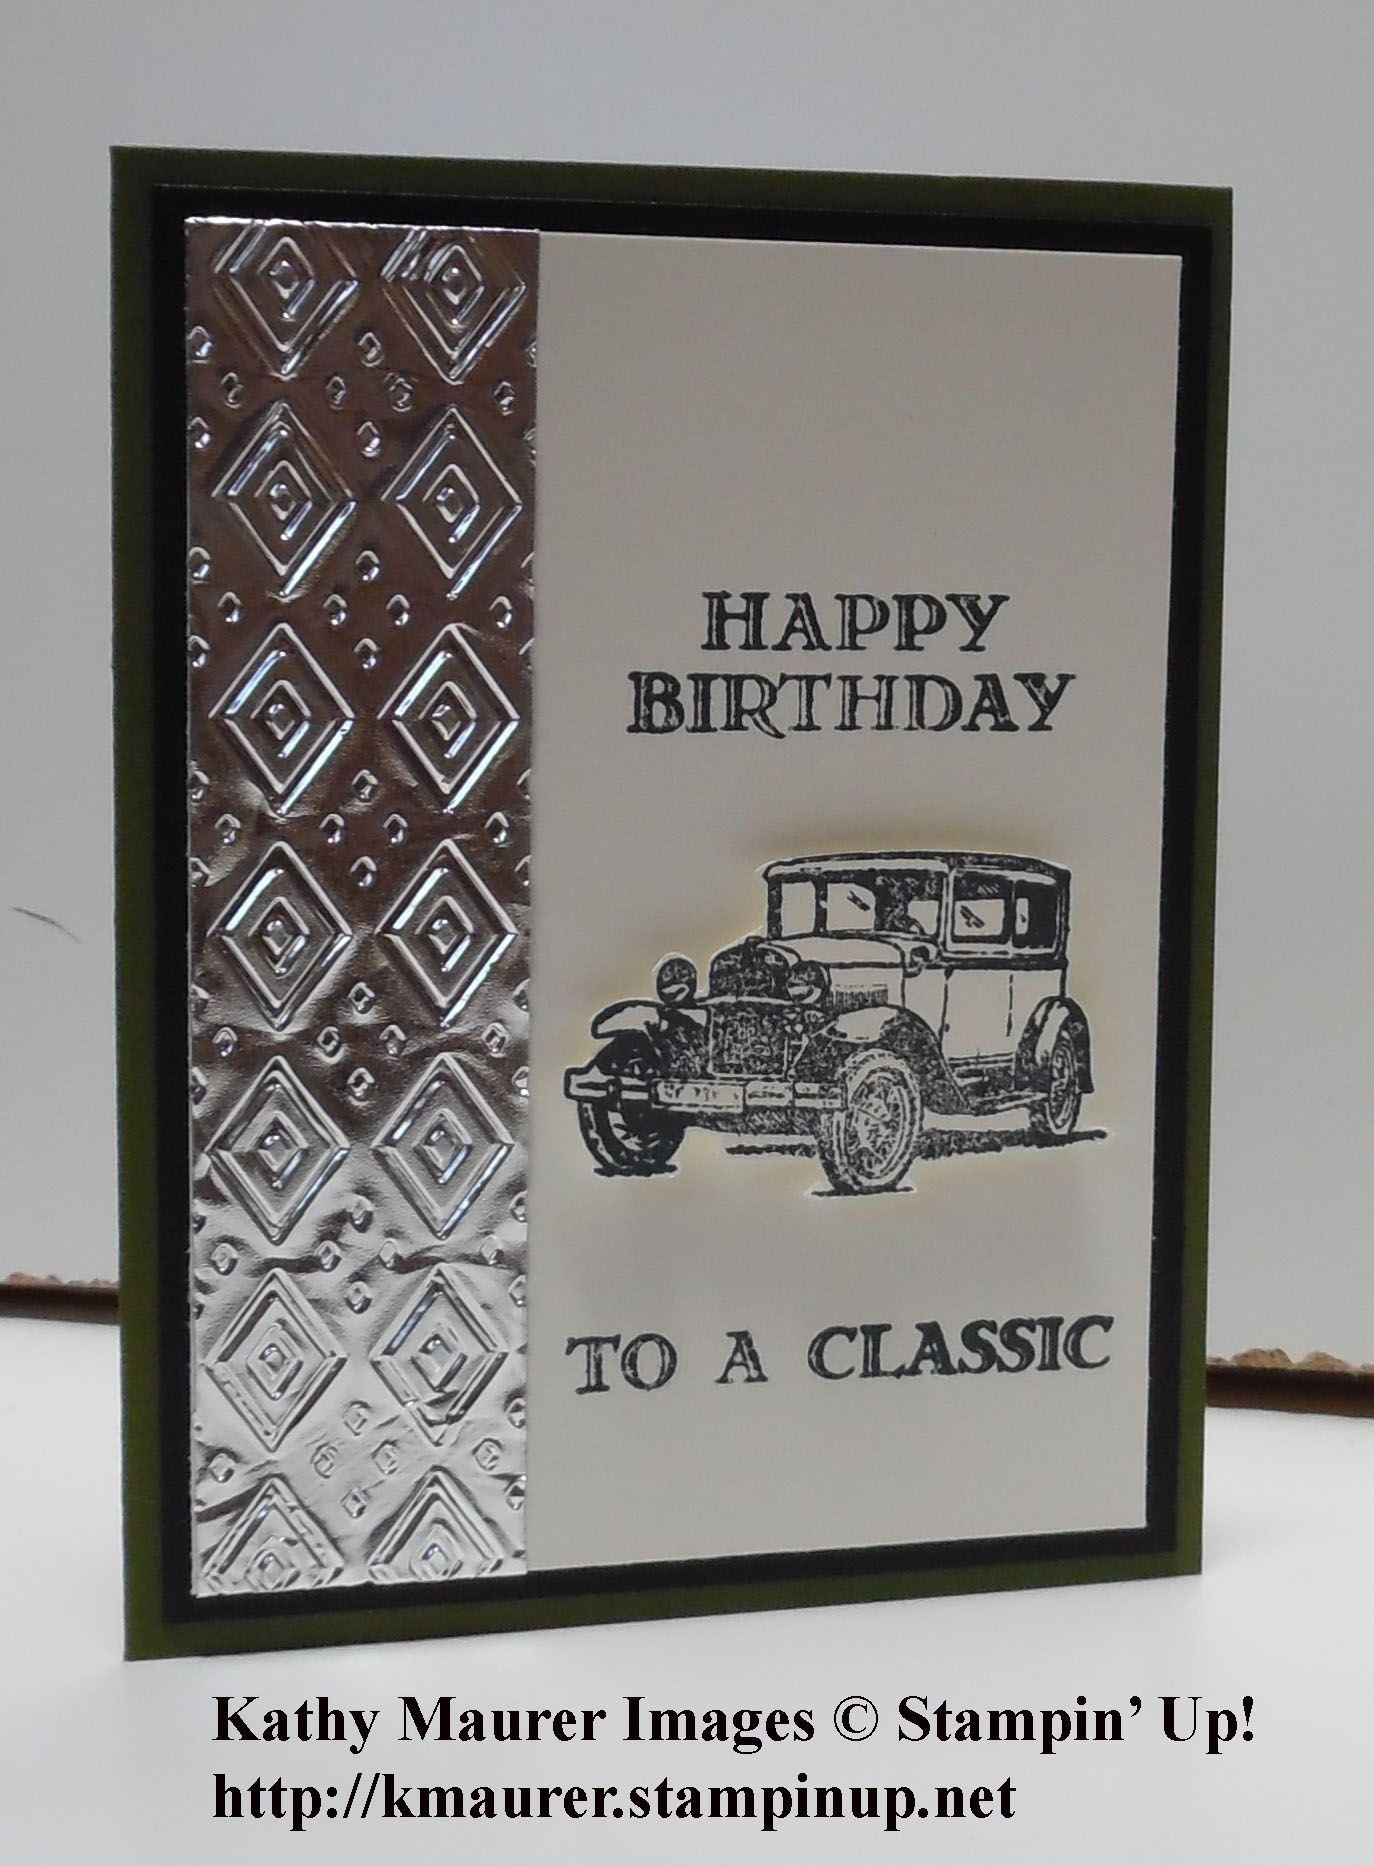 Stampin Ups Guy Greetings Stamp Set Used To Make This Birthday Card July 13 2015 Kmaurerstampinup